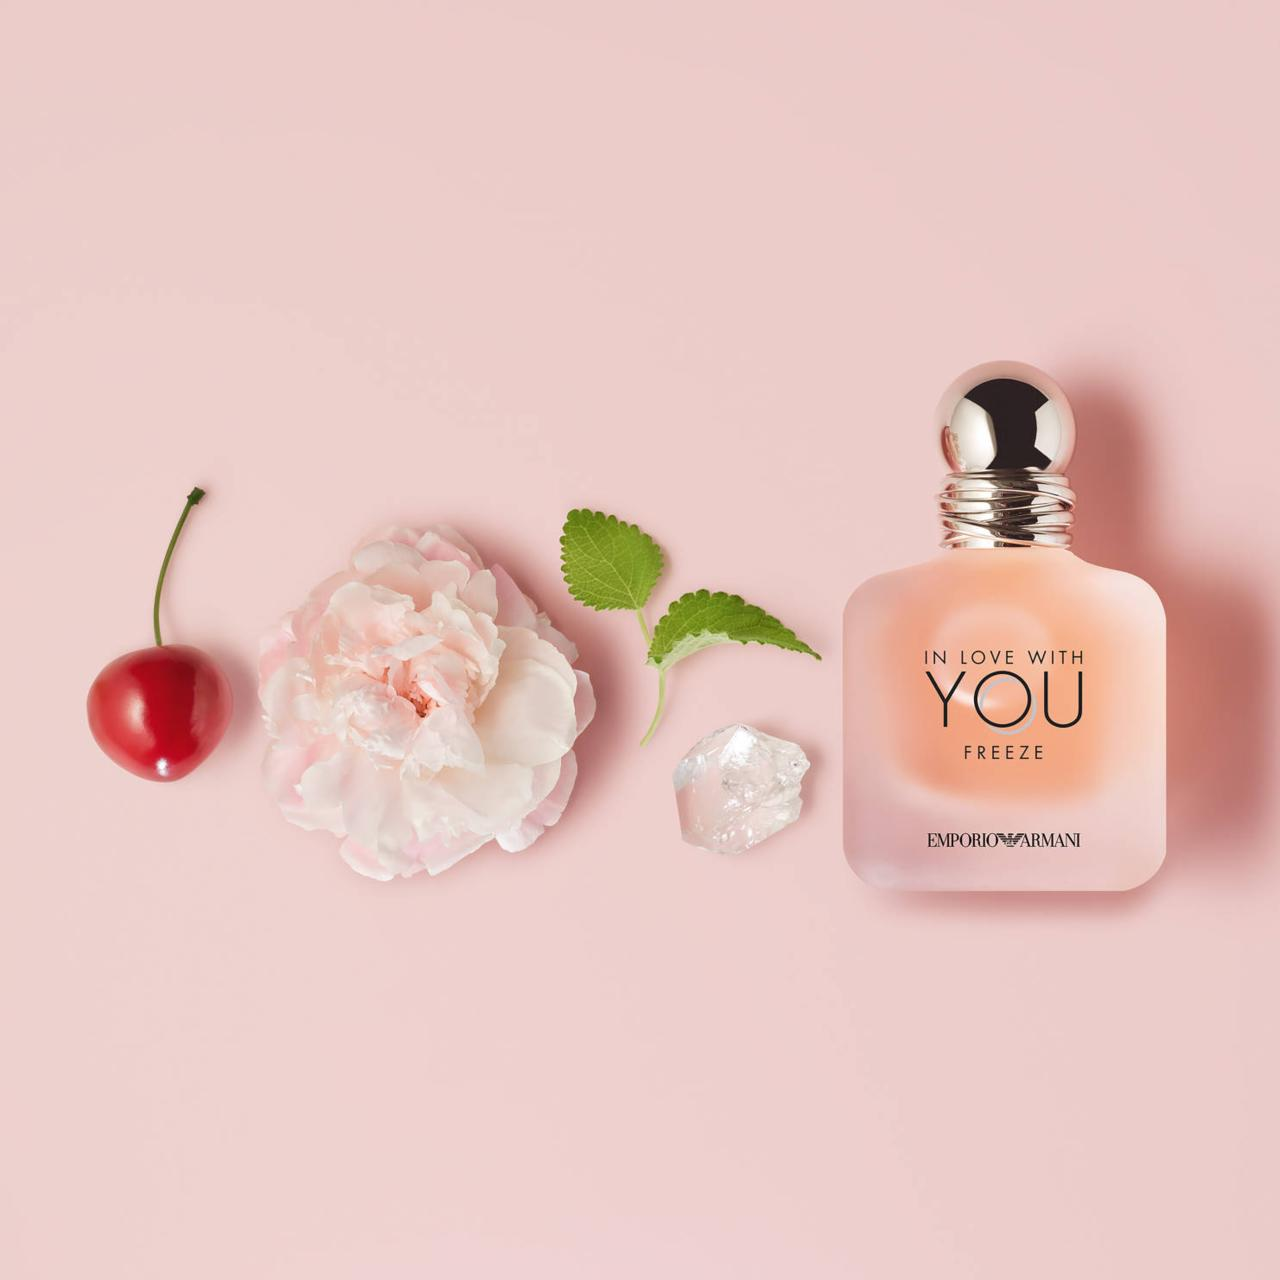 Emporio Armani In Love With You Freeze, 7.999 kr. (30 …